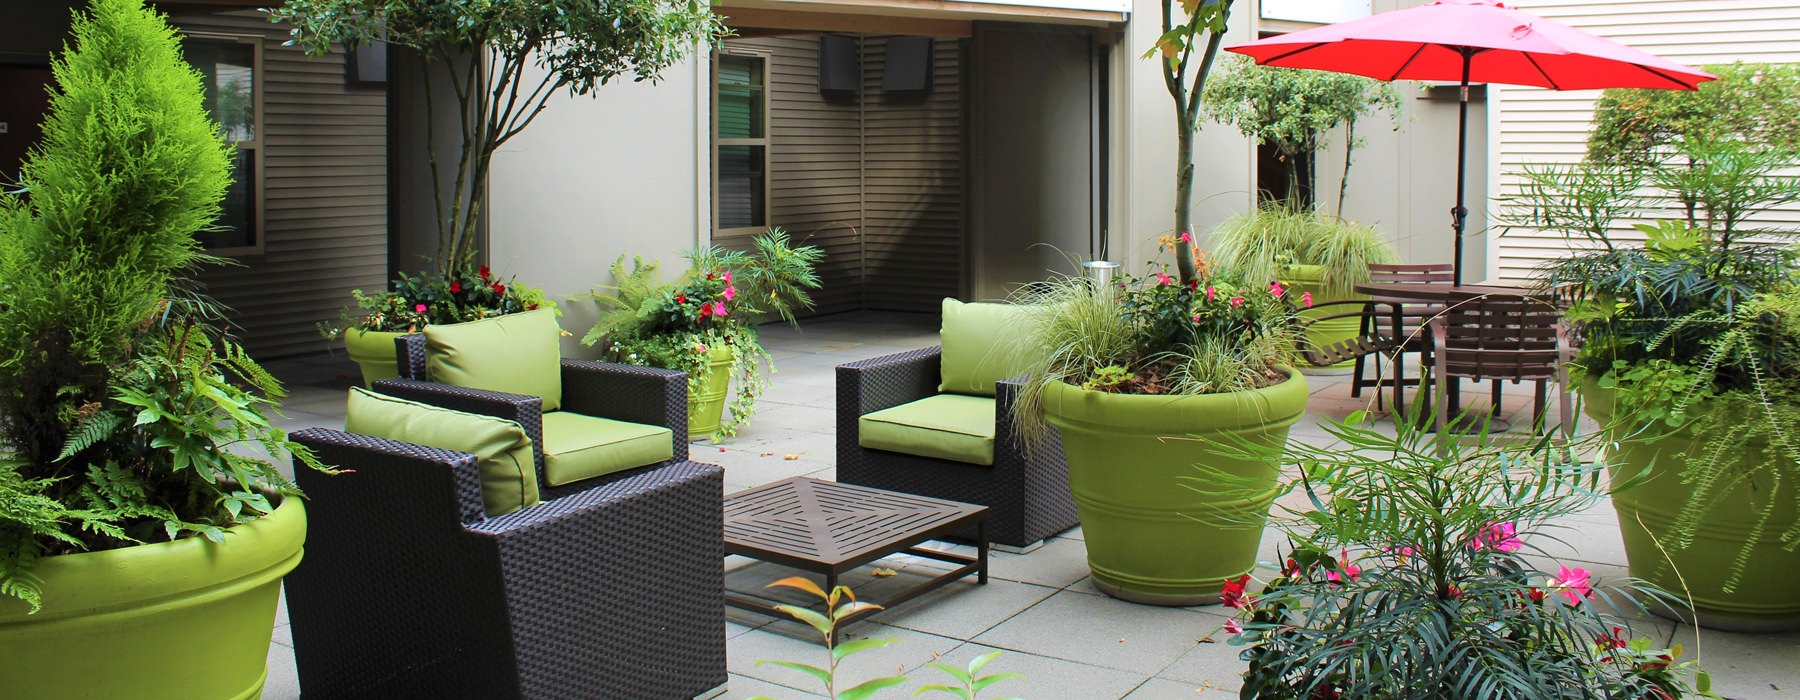 Outside patio seating with plush chairs and potted trees